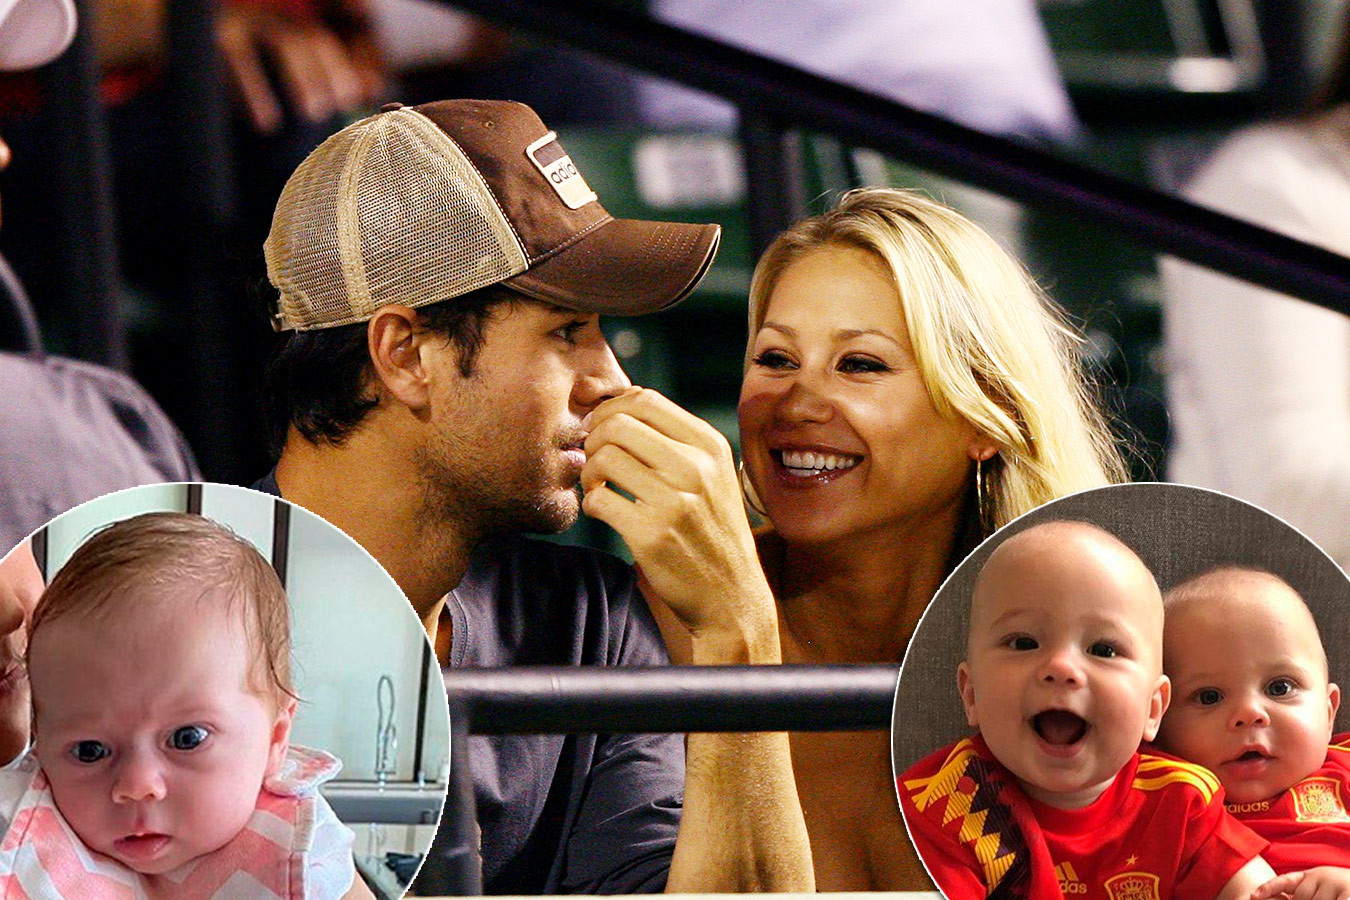 The daughter of Enrique Iglesias and Anna Kournikova danced incendiary to the new song of dad